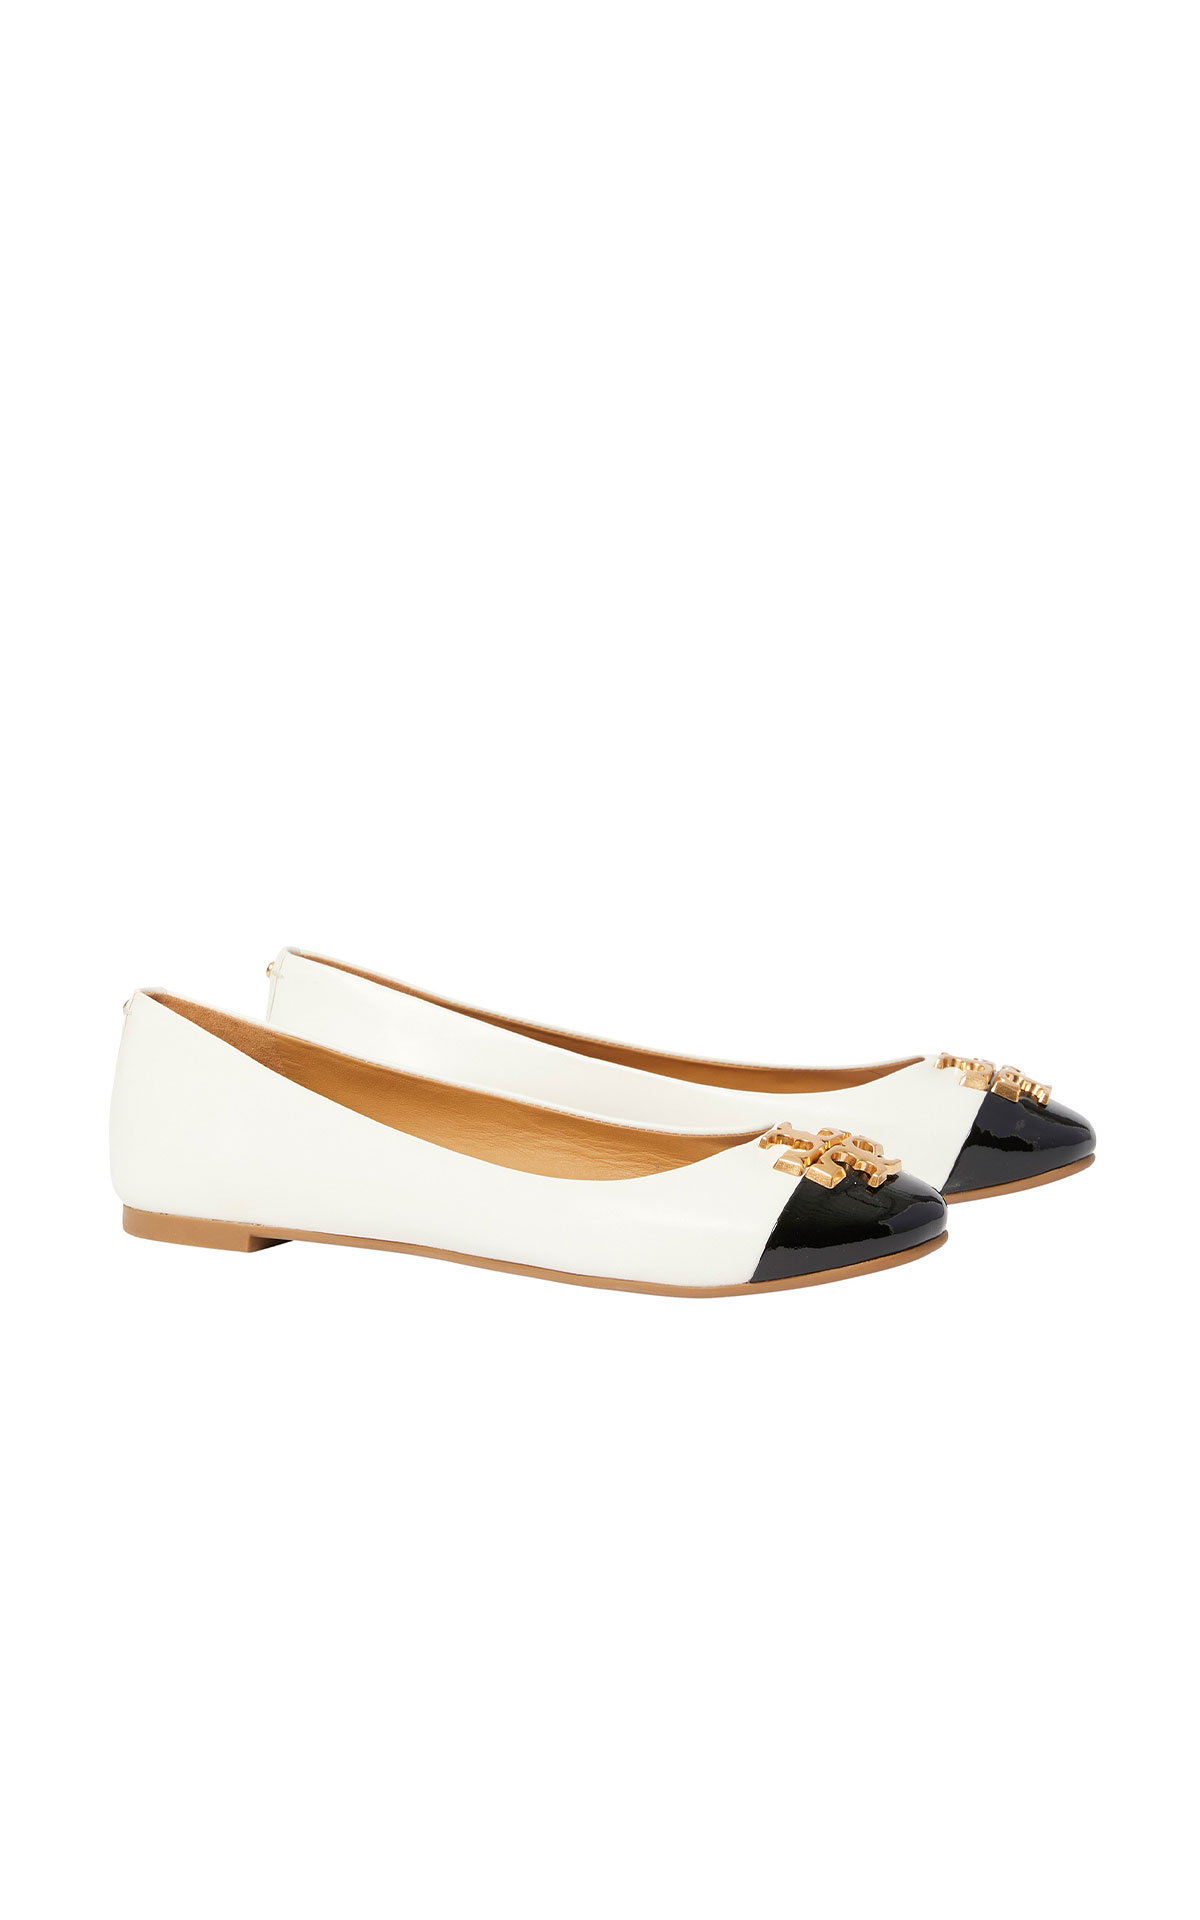 Tory Burch Everly cap-toe ballet shoe from Bicester Village